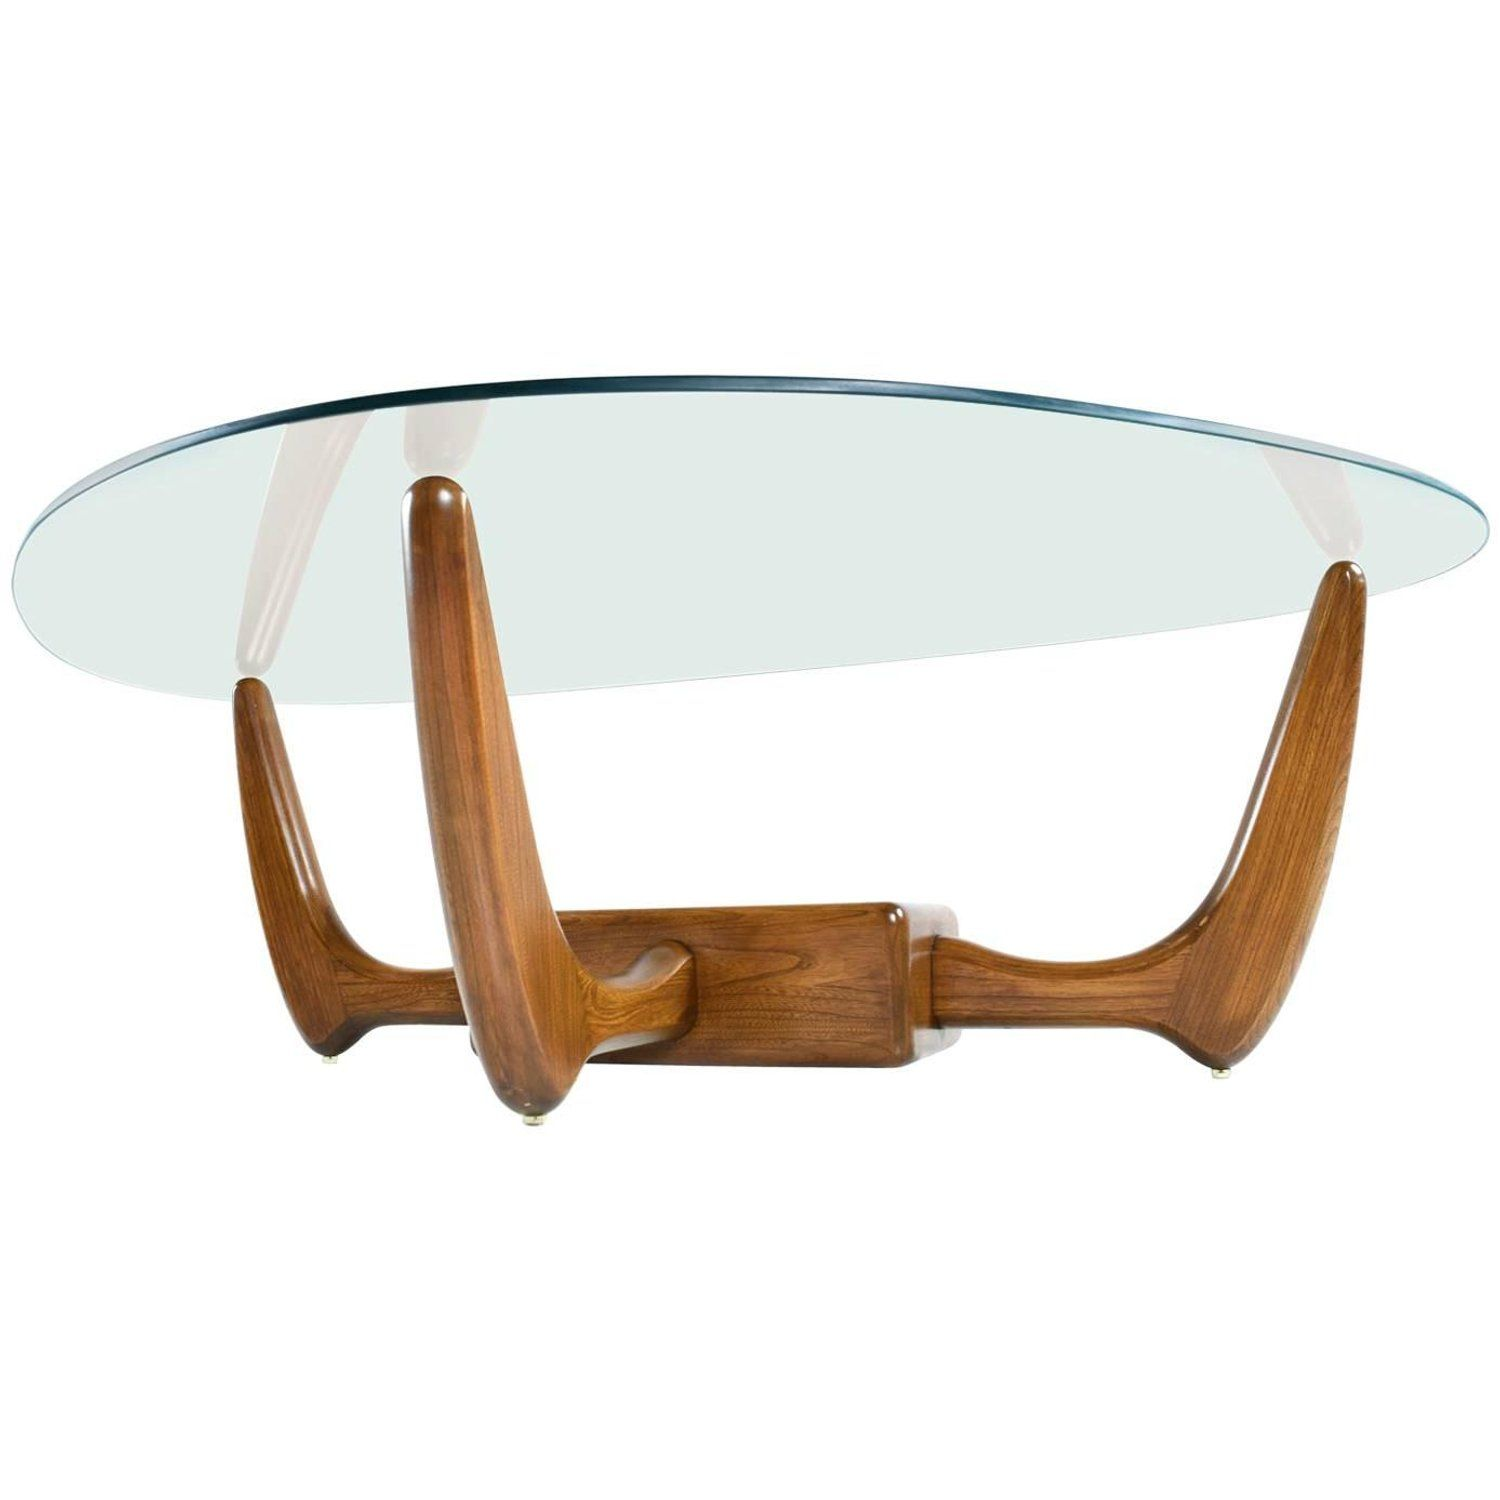 Adrian Pearsall Style Glass Top Solid Oak Base Coffee Table With Planter Large Square Coffee Table Vintage Coffee Glass Top Coffee Table [ 1500 x 1500 Pixel ]